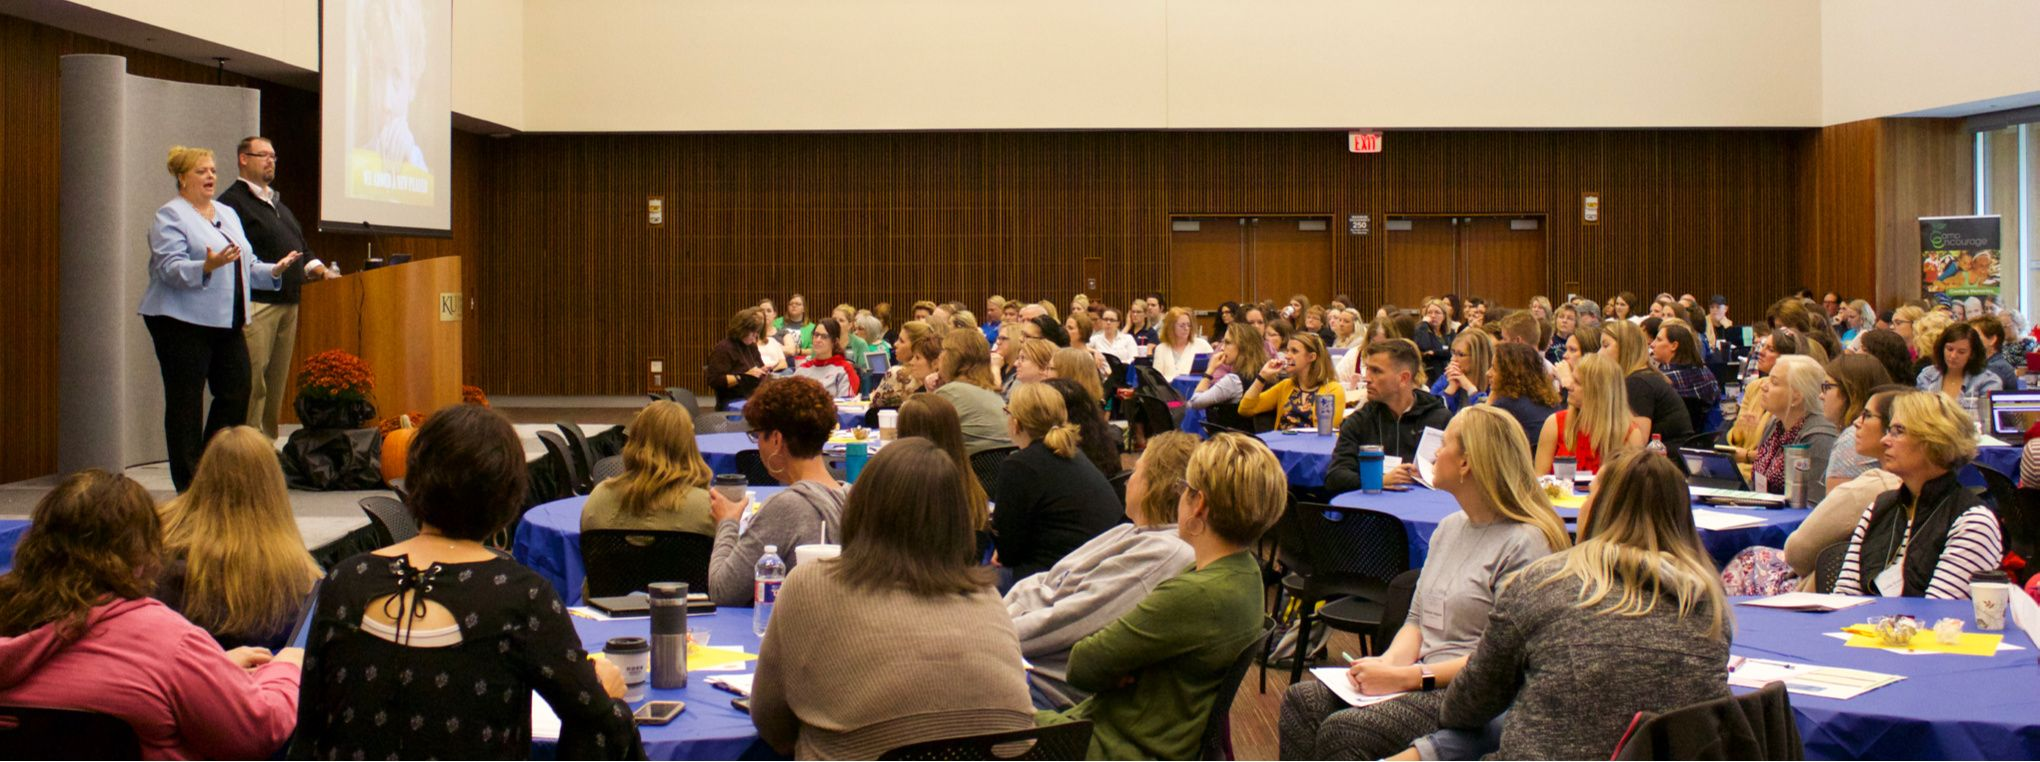 Postponed: Third Annual Richard L. Simpson Conference on Autism